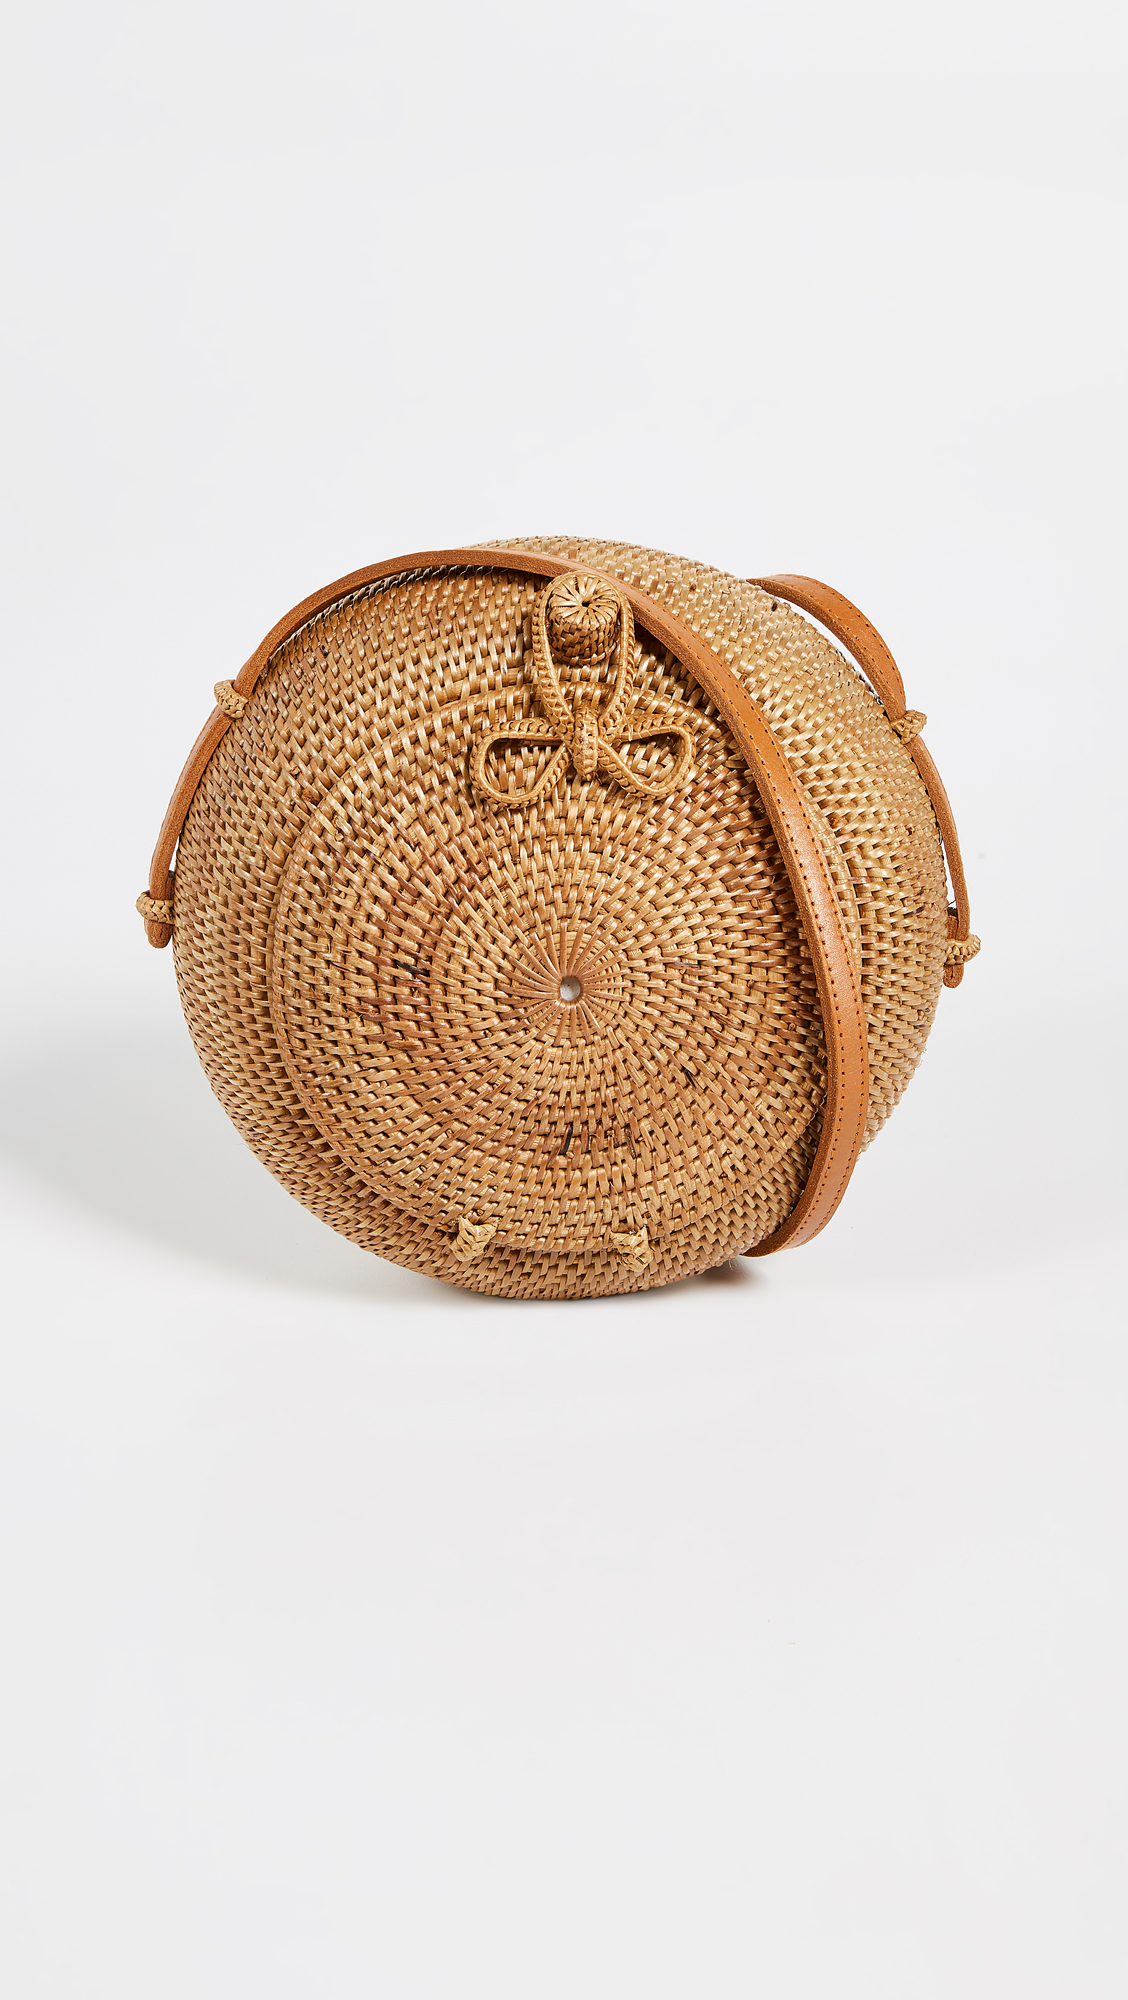 Wicker Canteen Purse